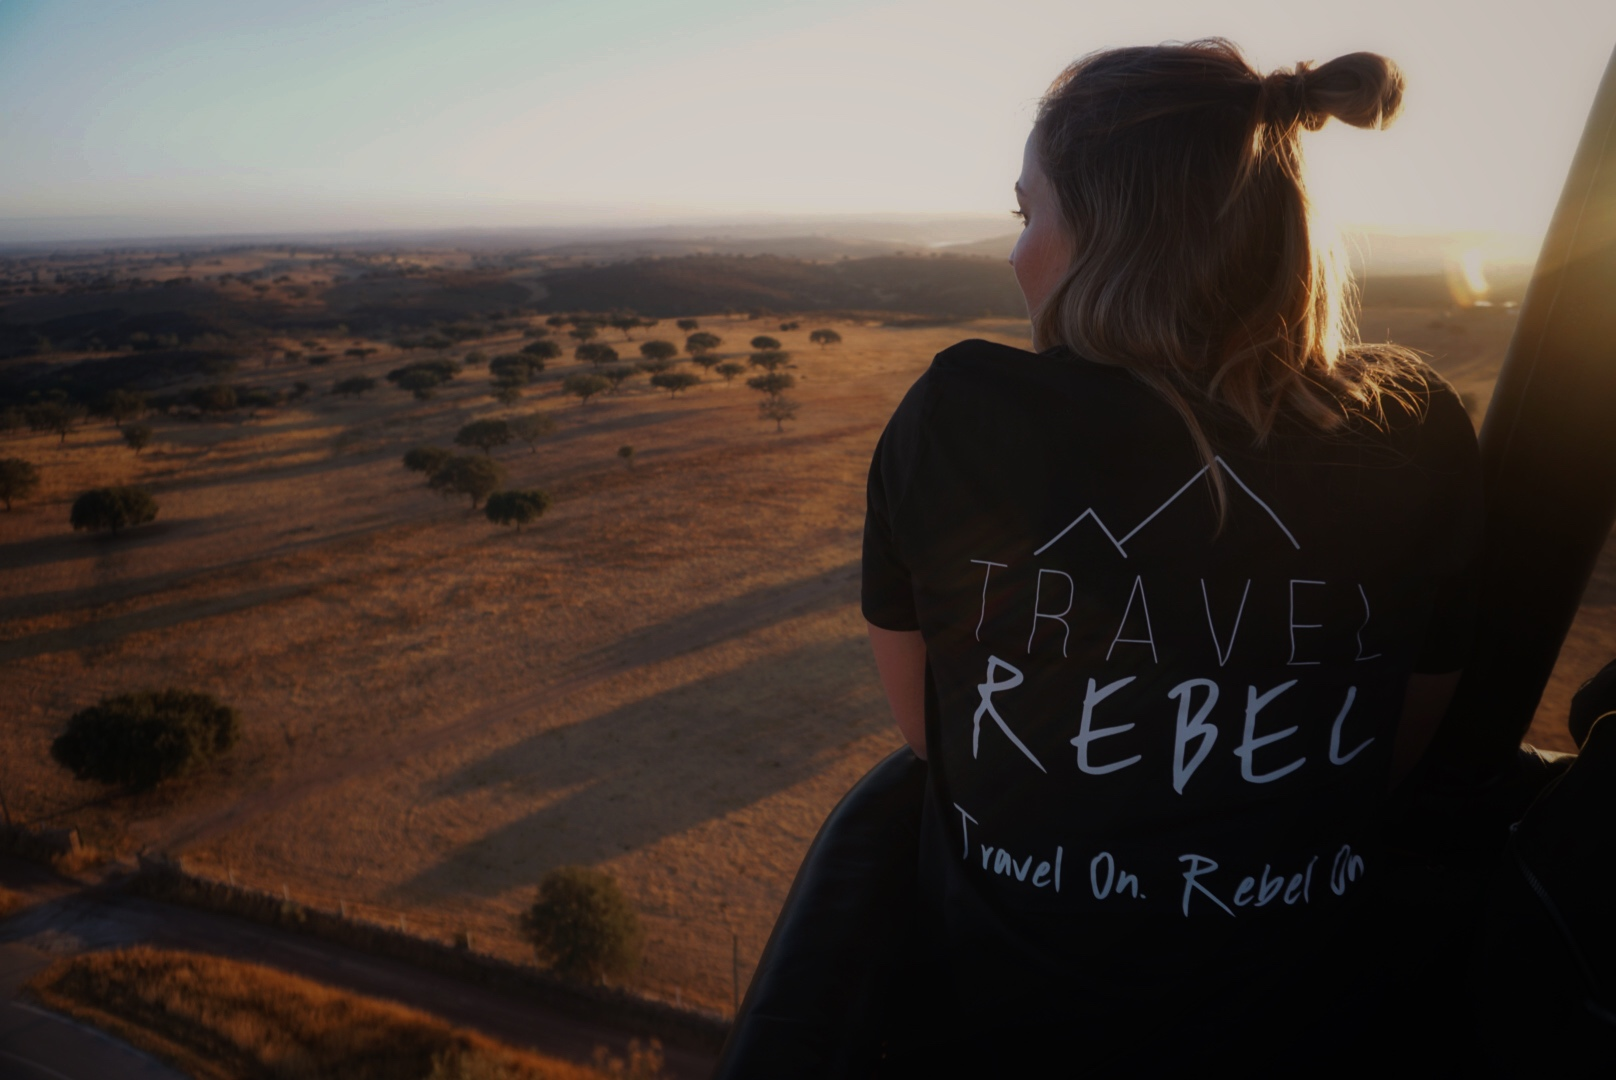 Hot Air Balloon Flight in Alentejo, Portugal - TravelRebel eco T-shirts